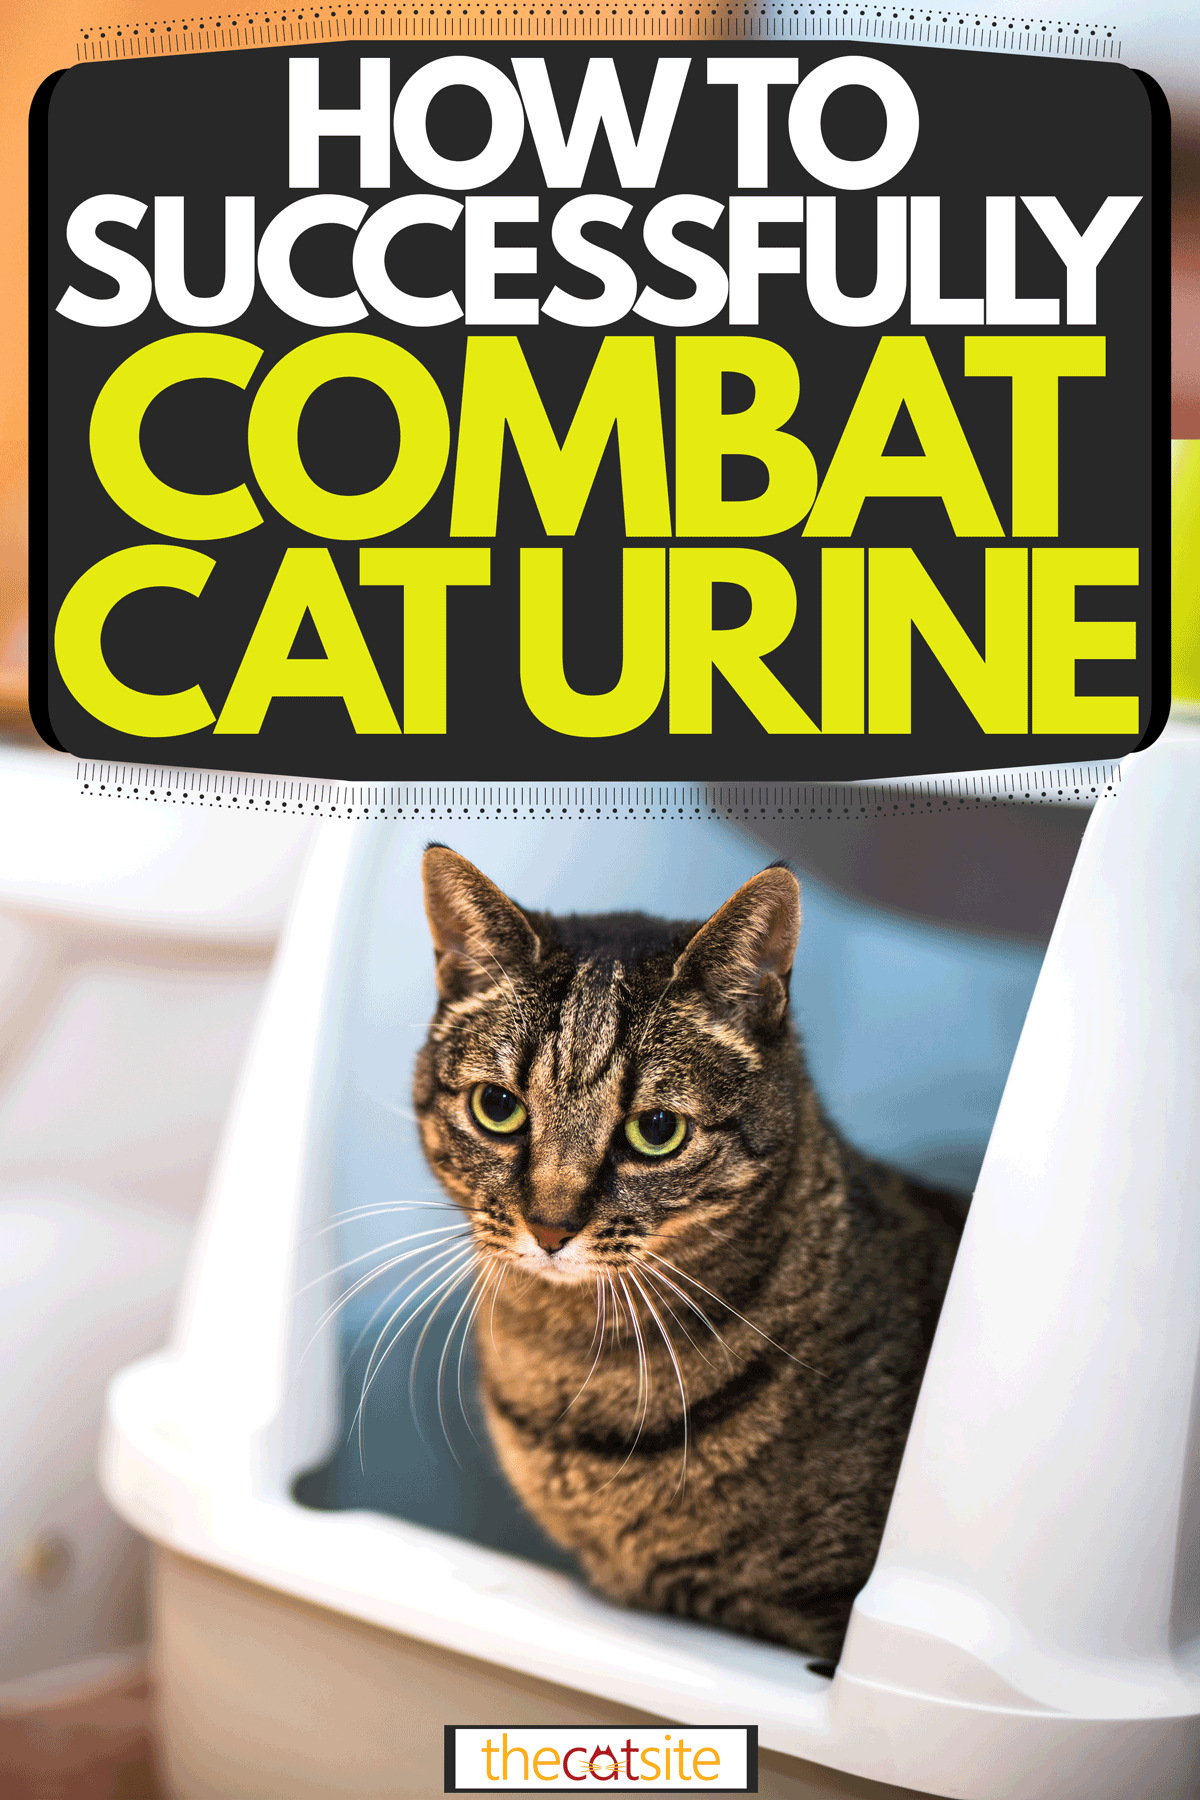 A cat sitting inside his litter box, How to Successfully Combat Cat Urine